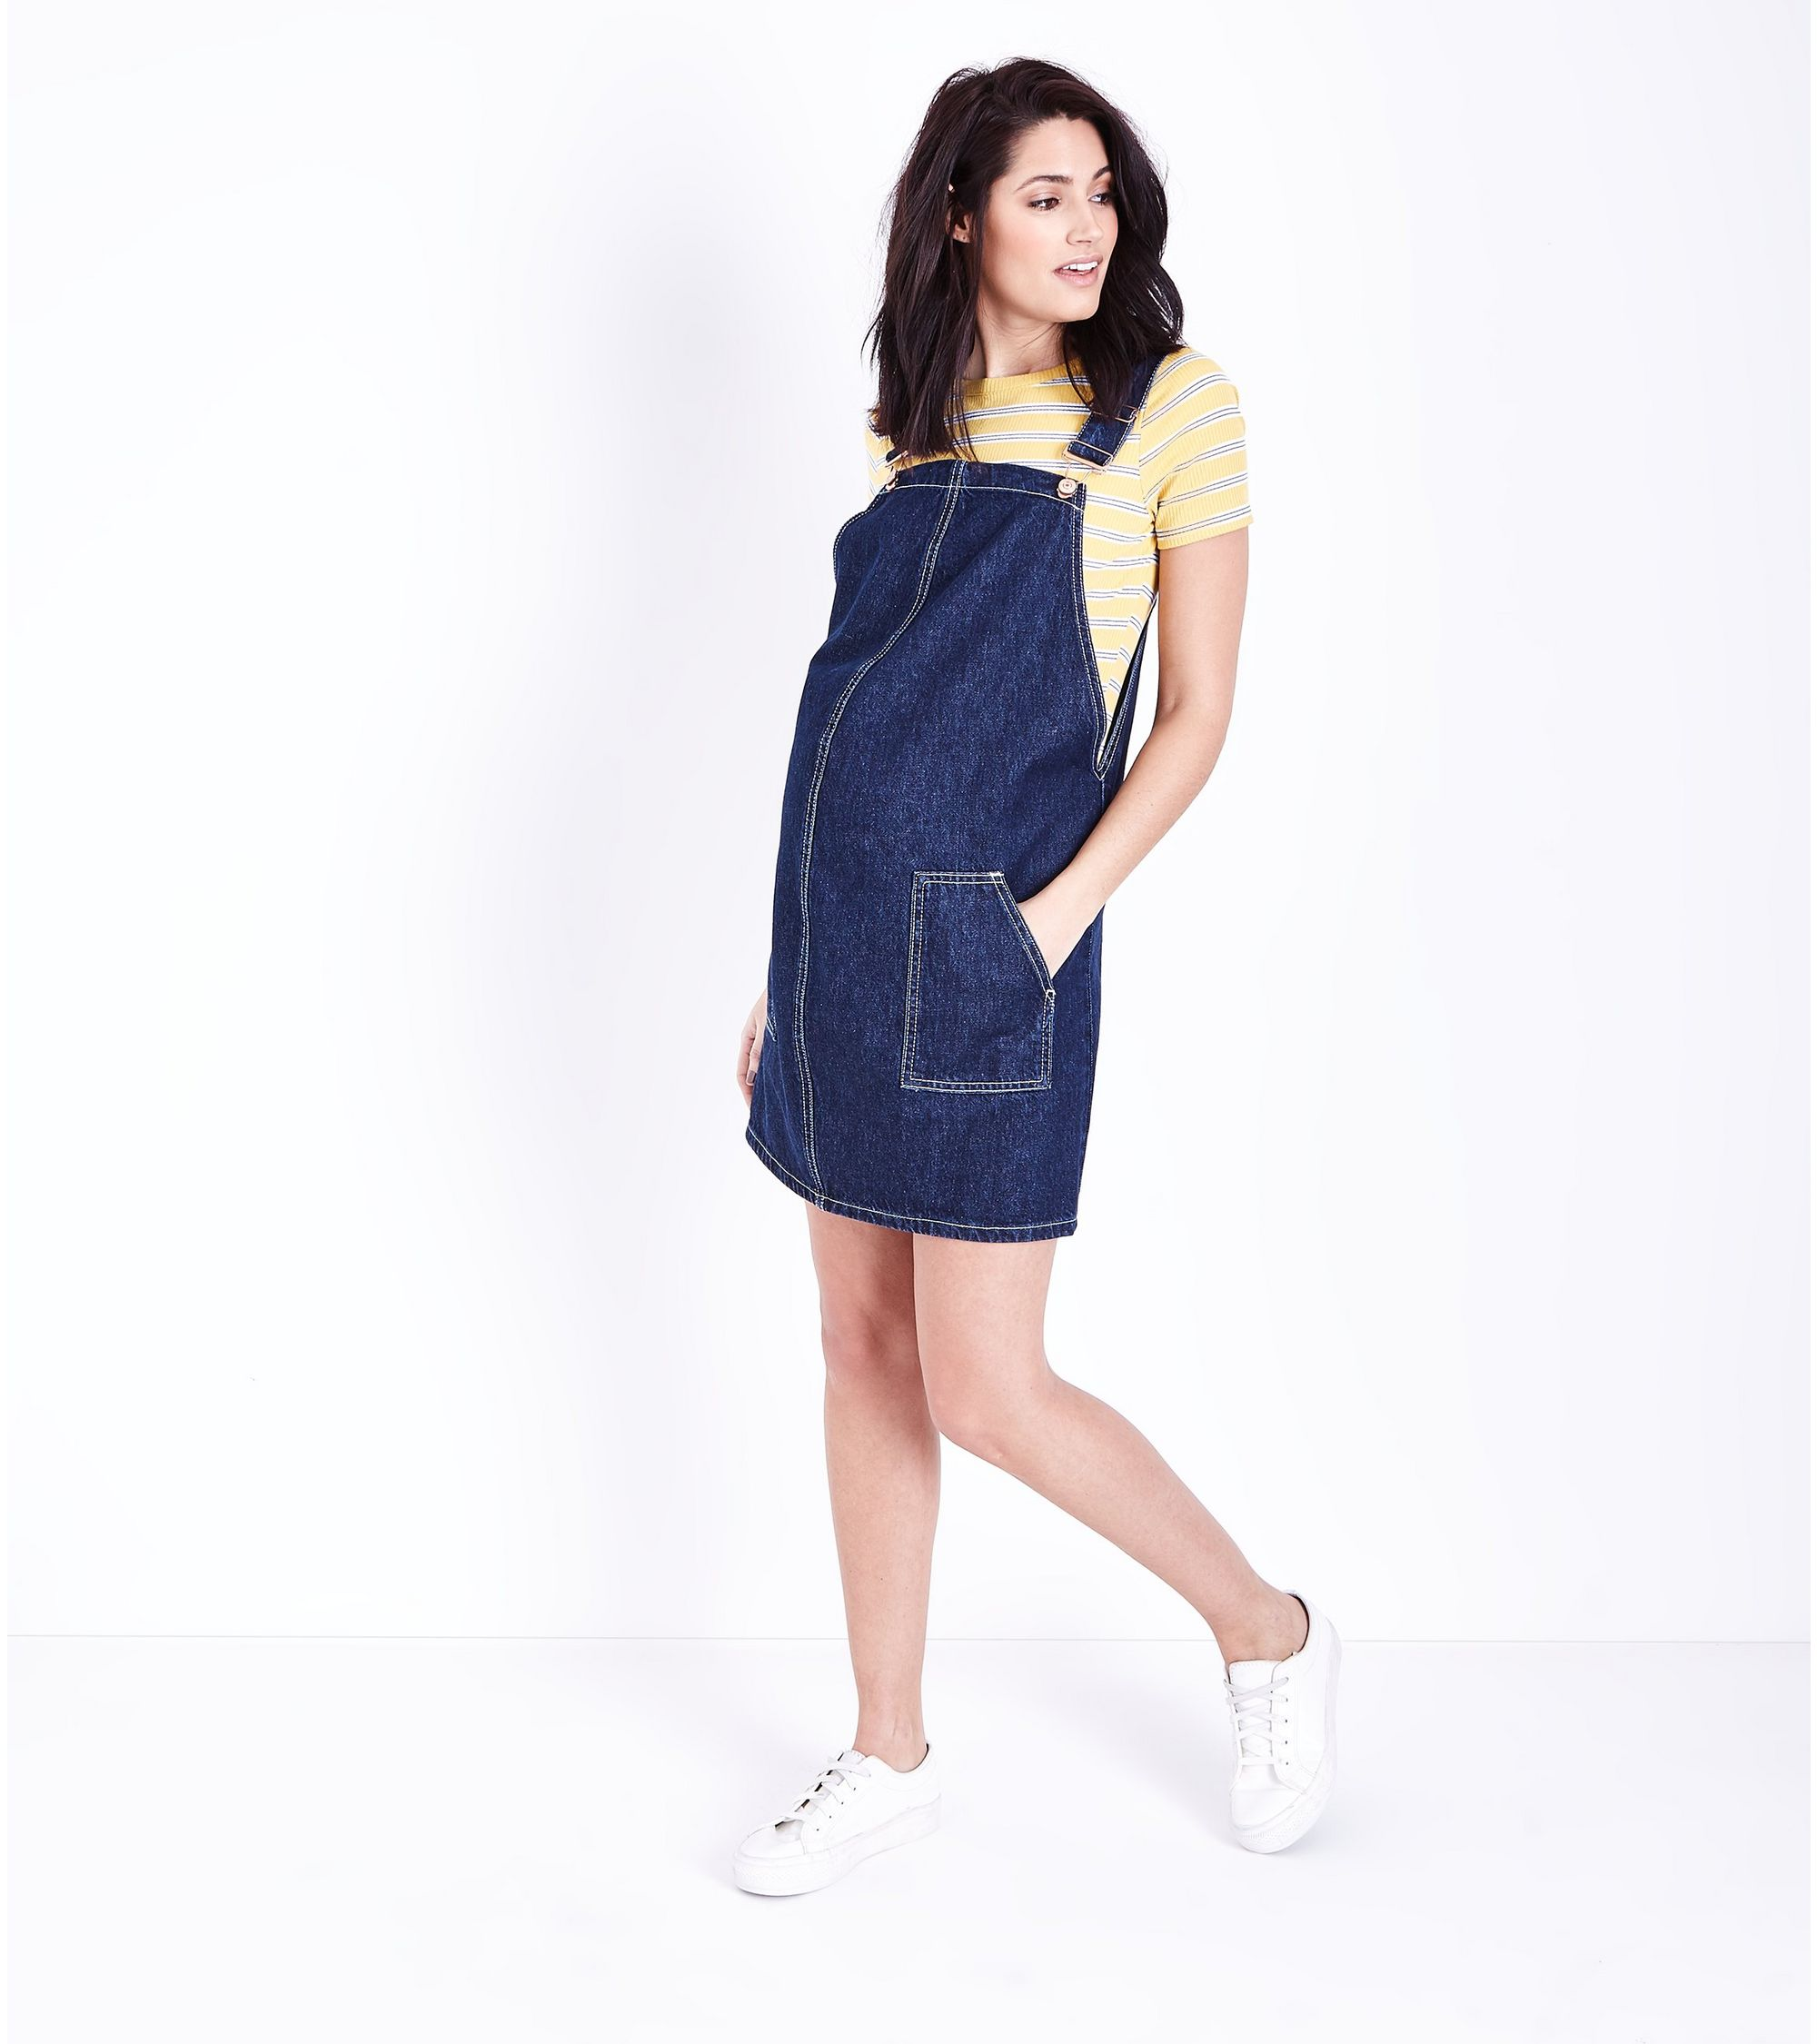 Newlook maternity dress gallery braidsmaid dress cocktail dress maternity blue denim pinafore dress new look at 2299 love new look maternity blue denim pinafore ombrellifo Choice Image